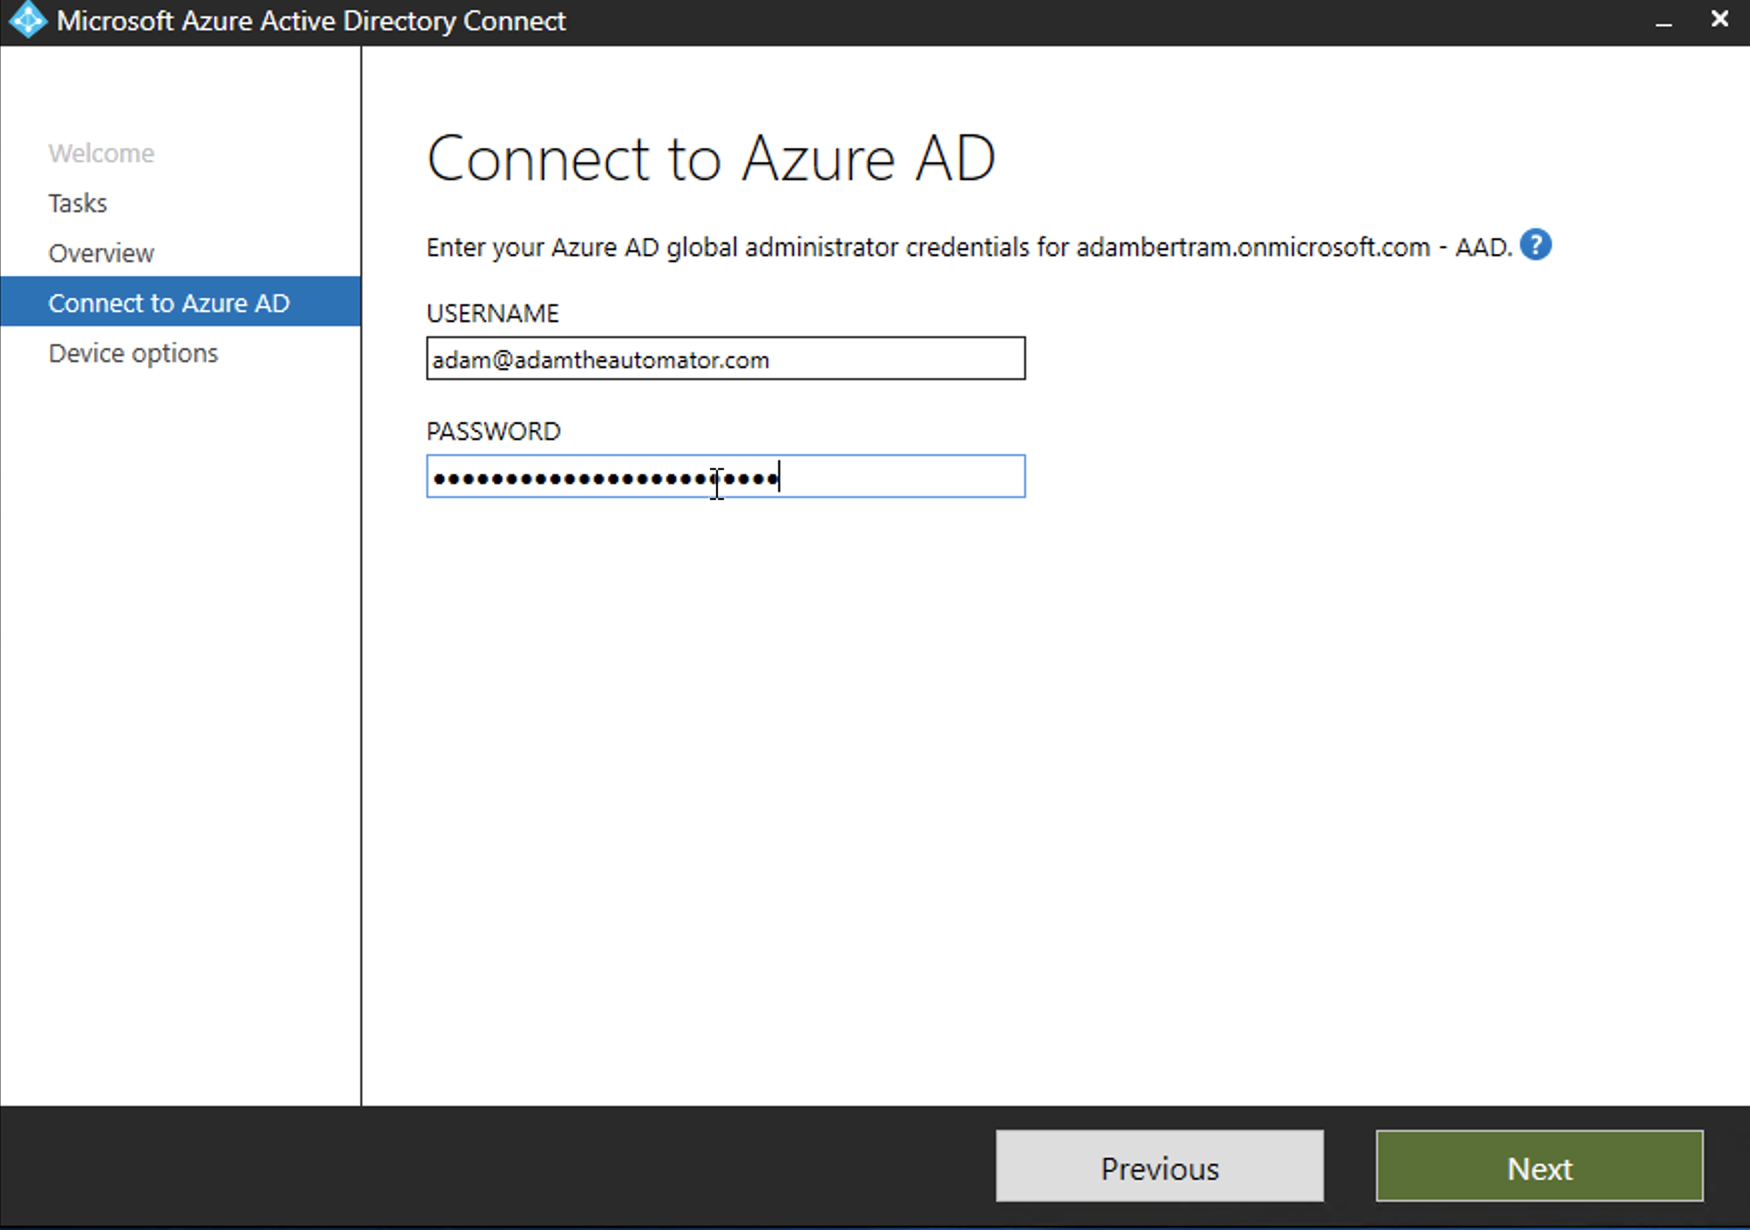 Adding username to connect to Azure AD